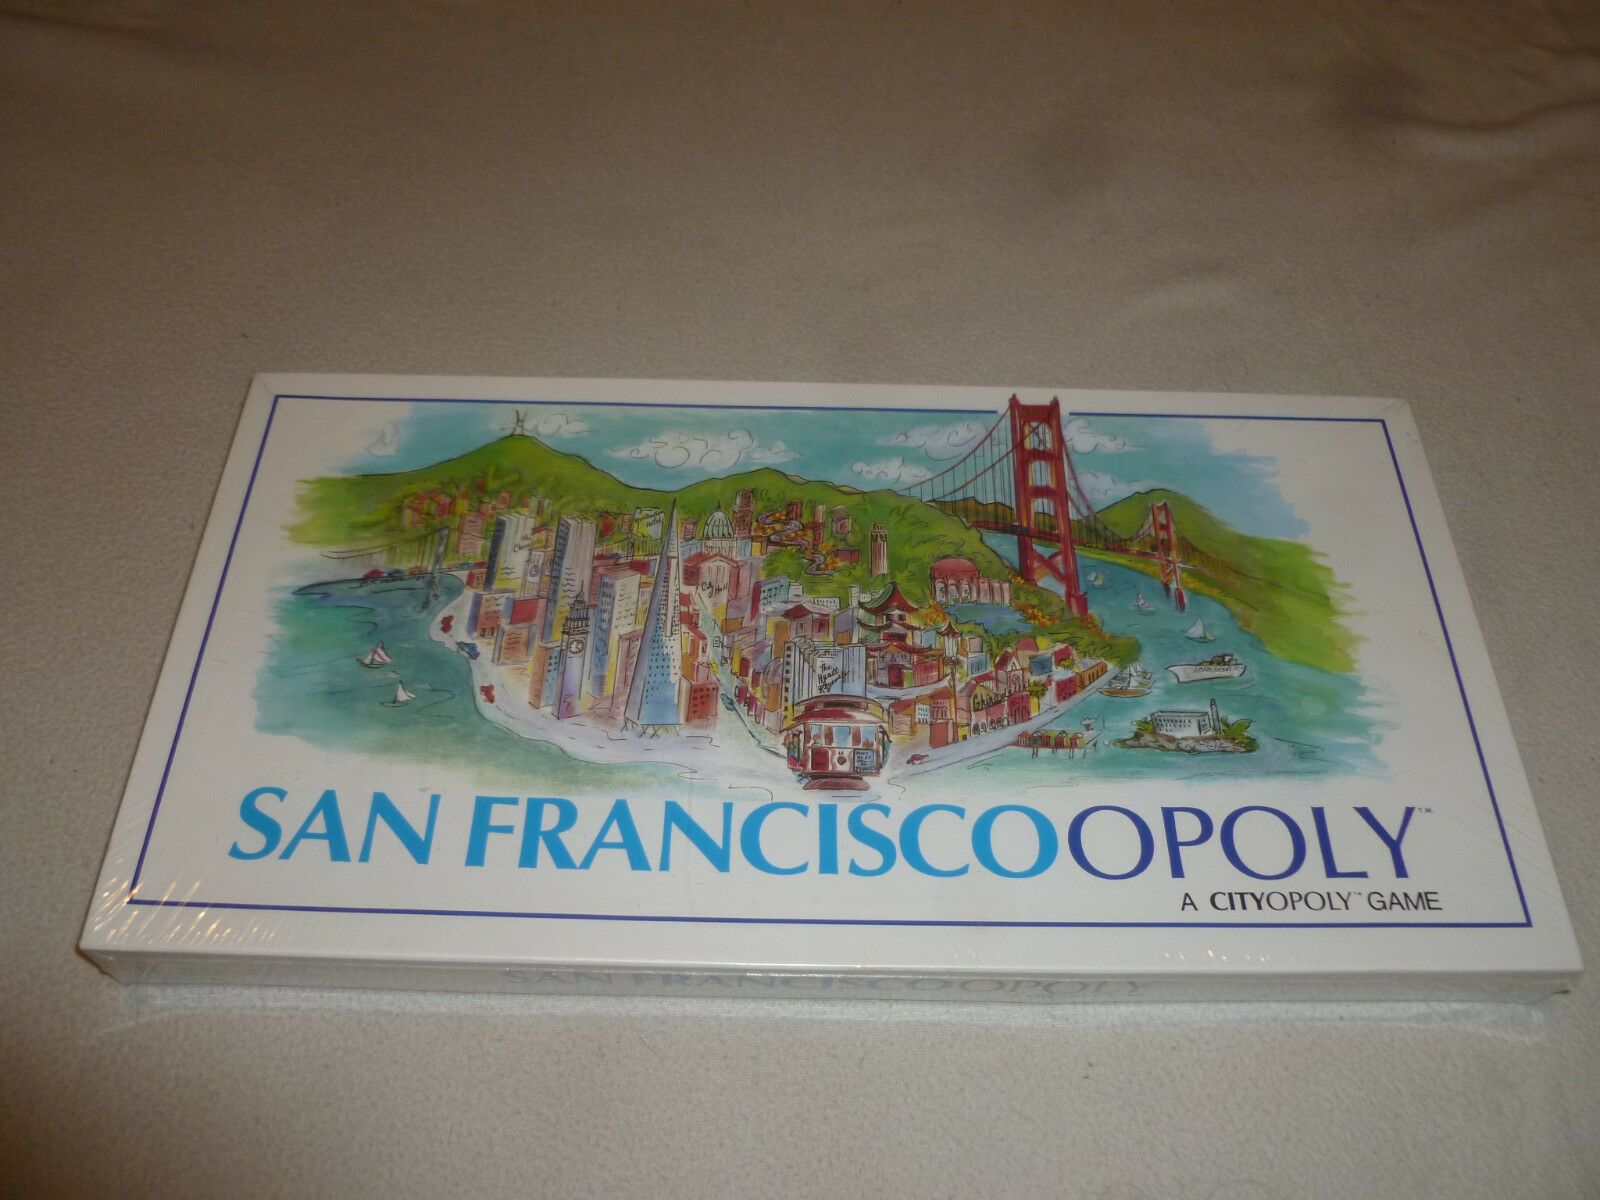 NEW SEALED MONOPOLY SAN FRANCISCO OPOLY CITYOPOLY BOARD GAME VINTAGE 1988 NISB